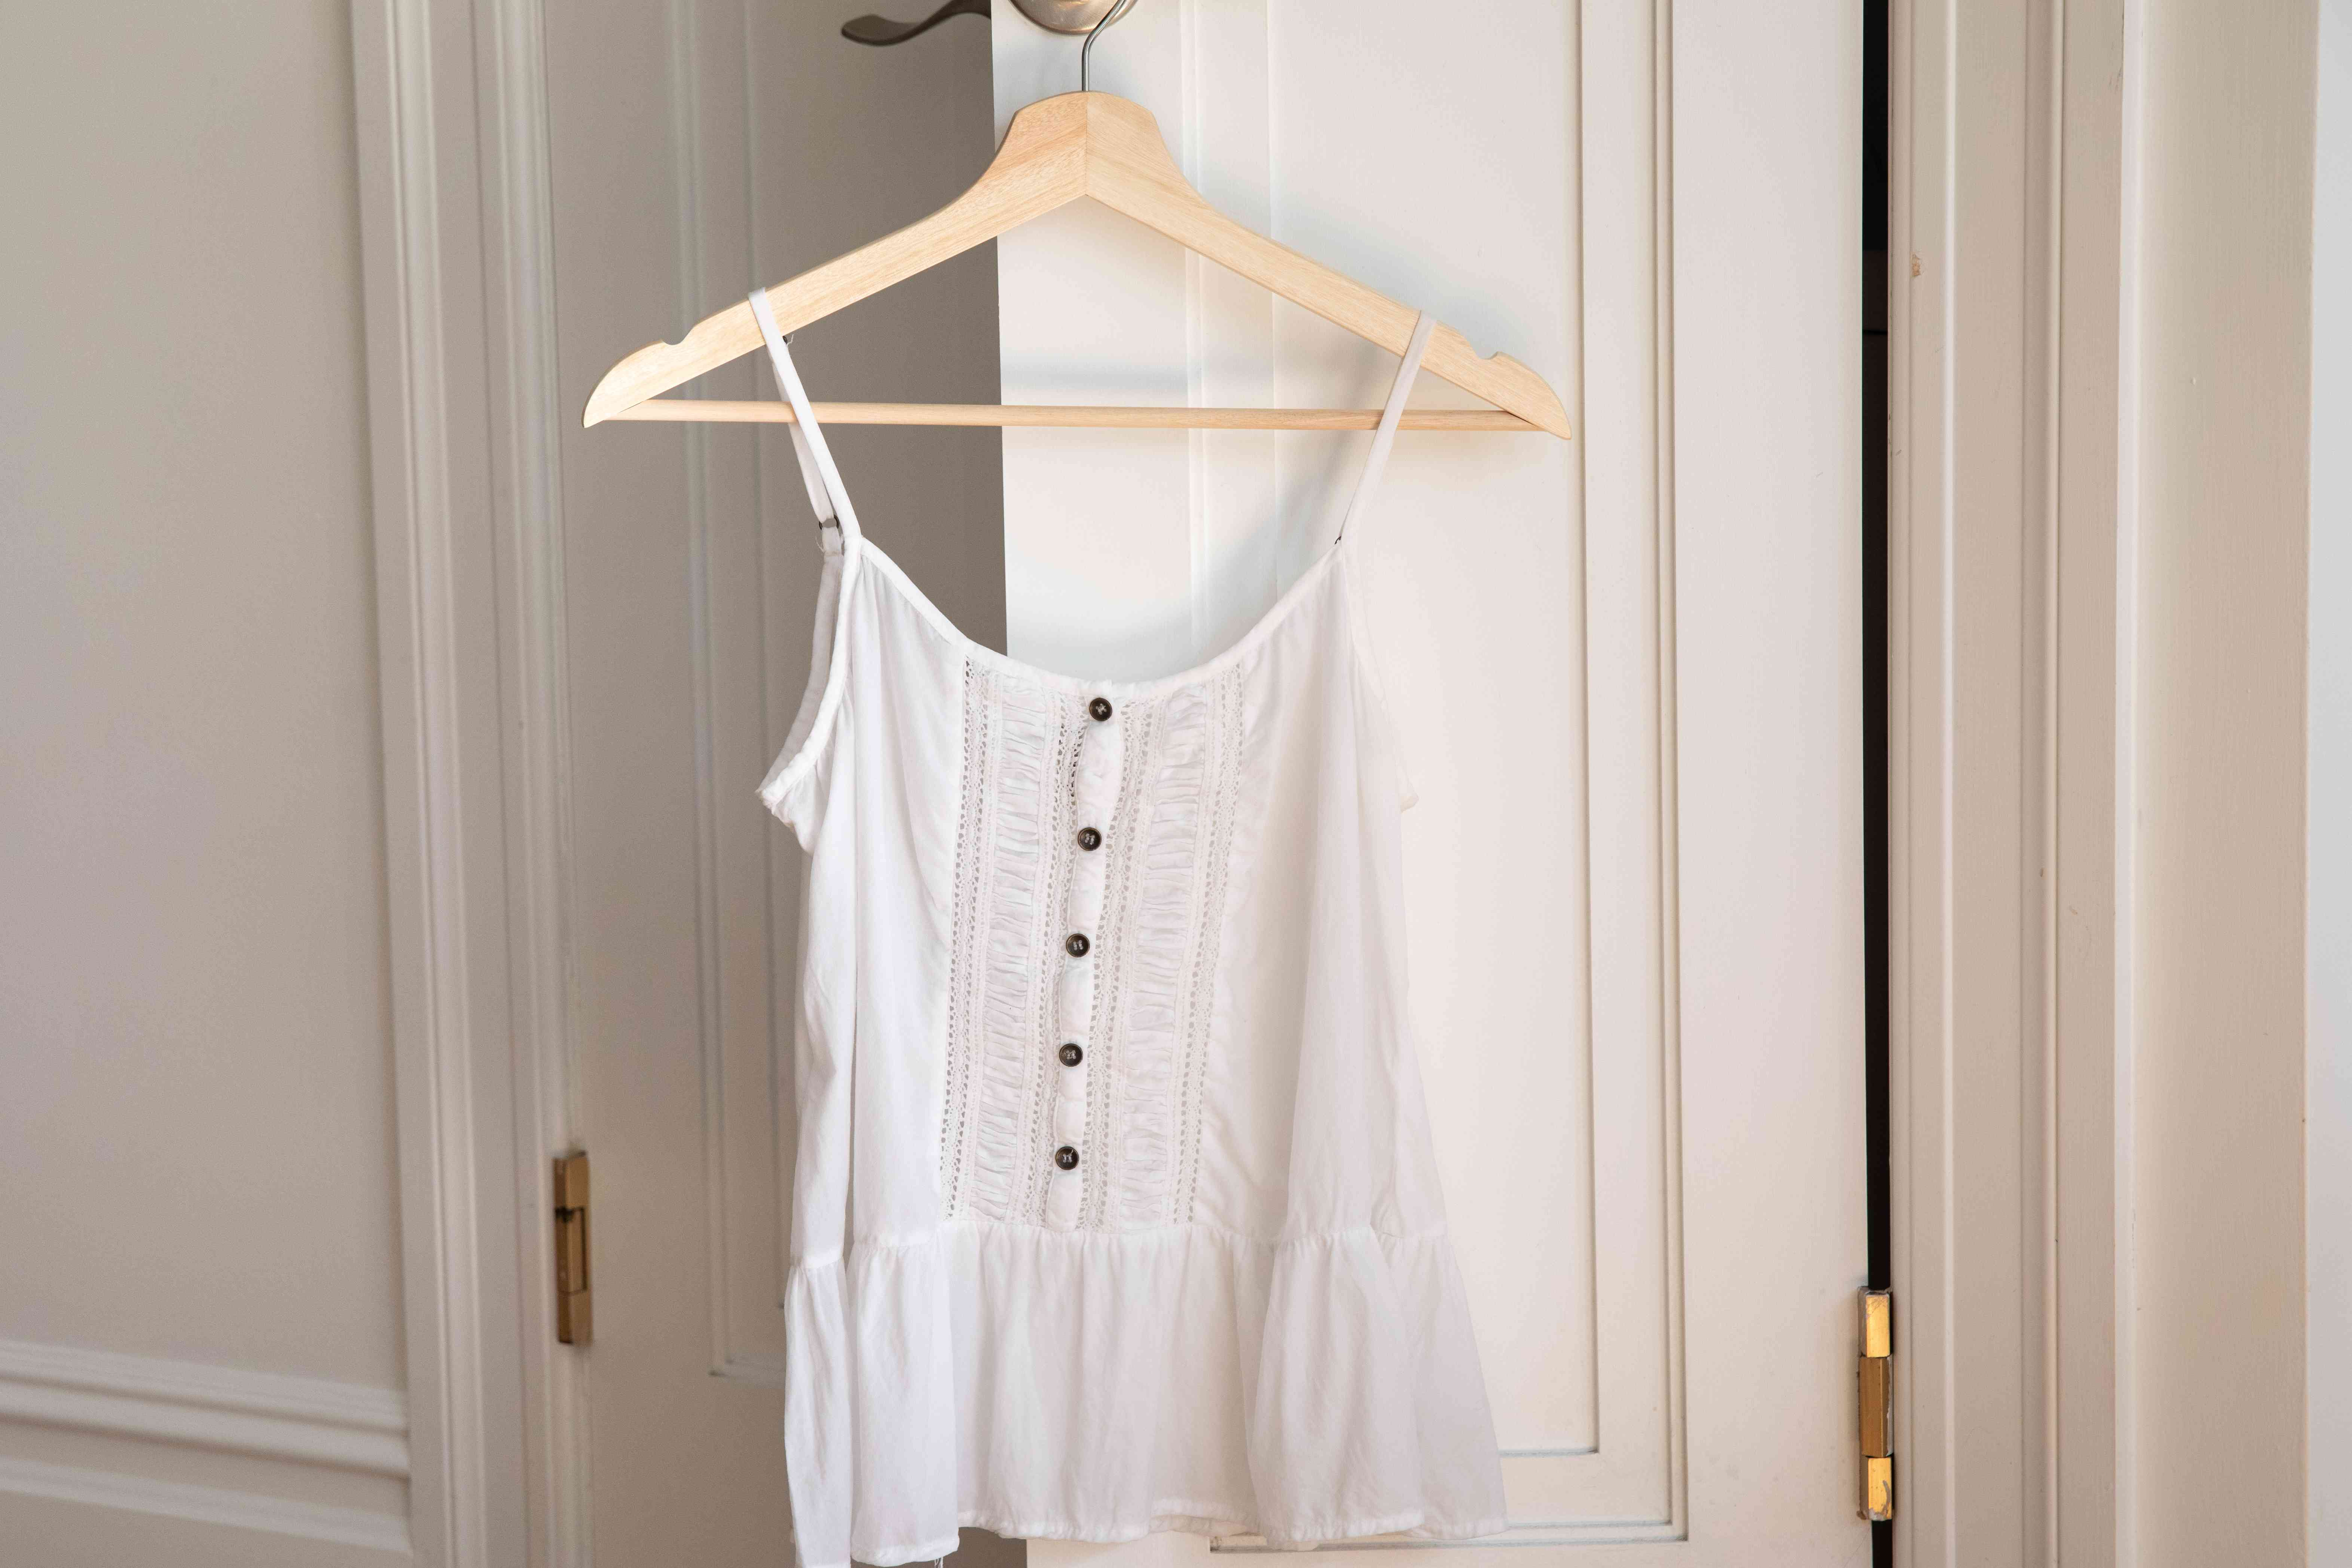 A white rayon top hanging from a hanger